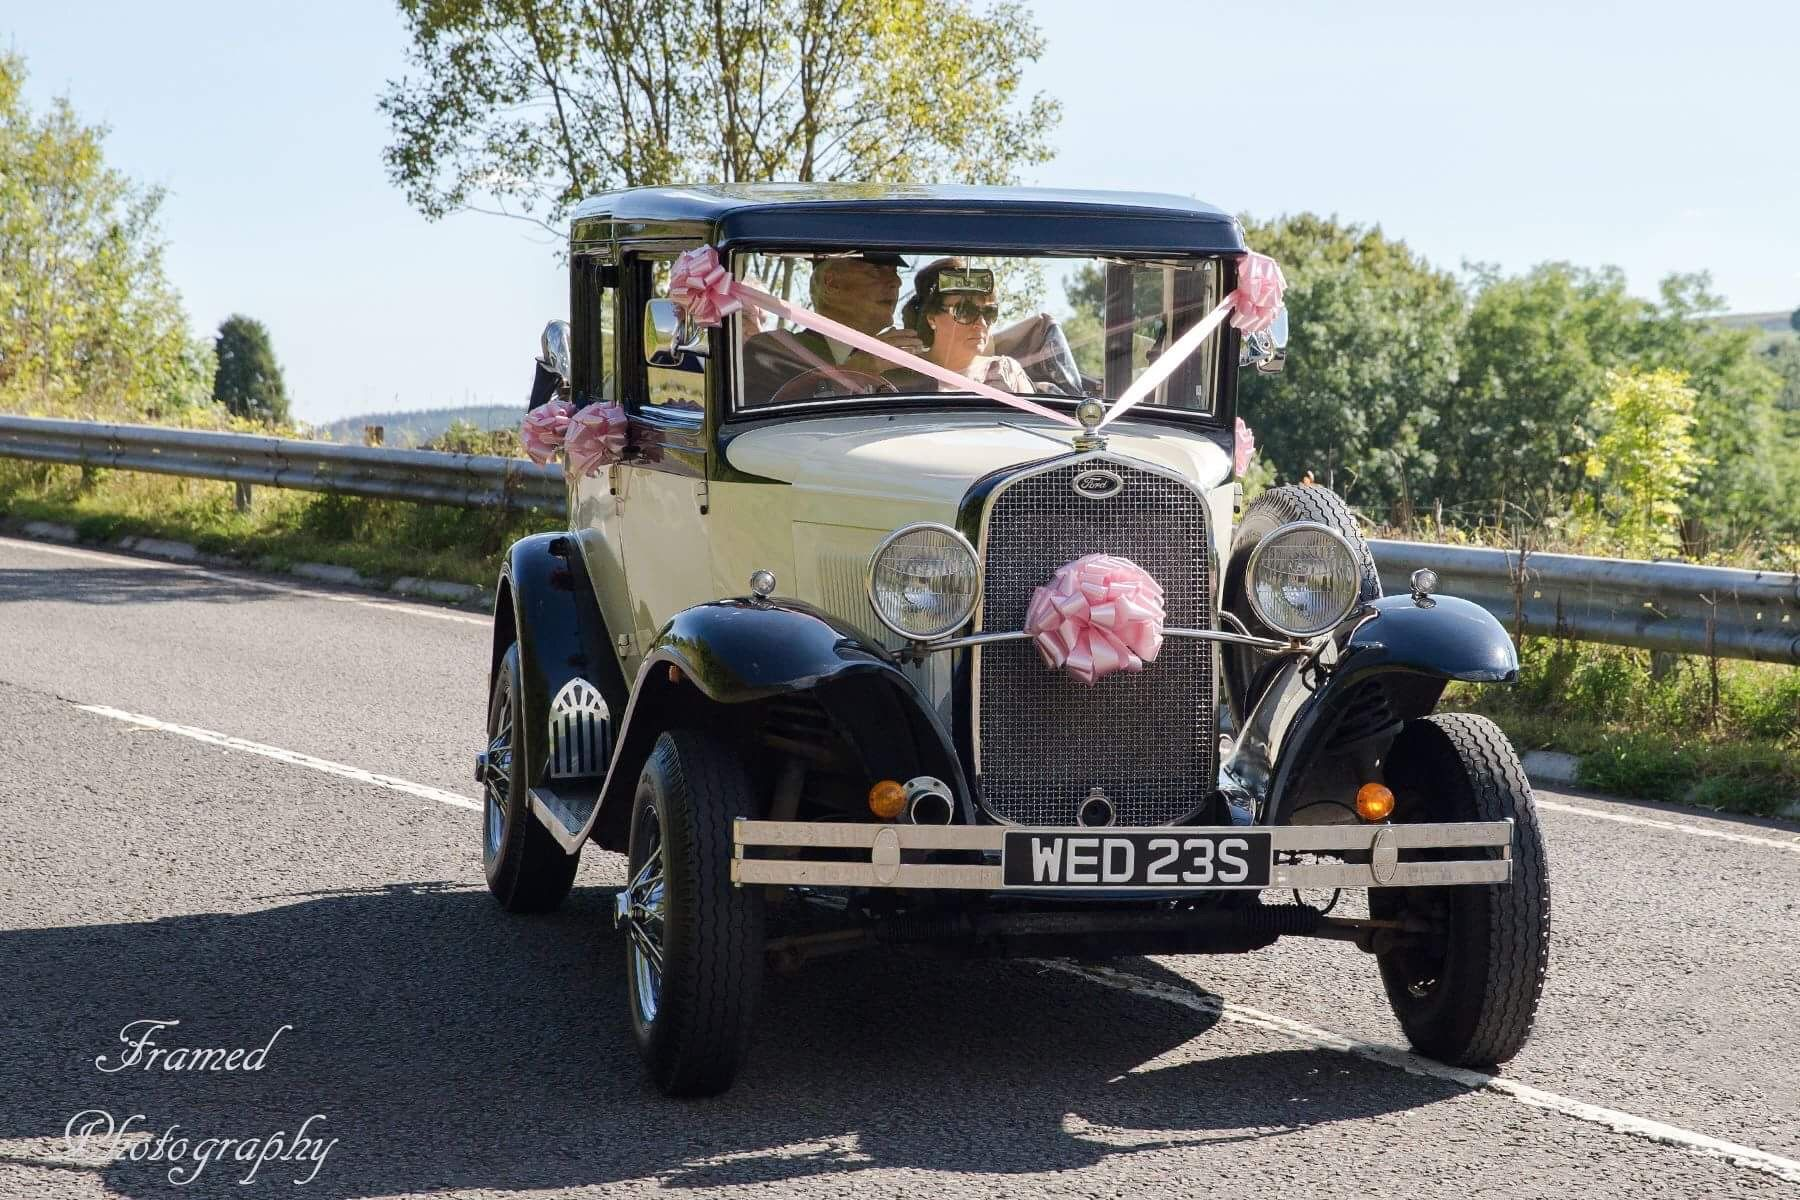 This Is Brecon Wedding Cars And Their Fleet Of Vintage Style Luxury Modern Vehicles